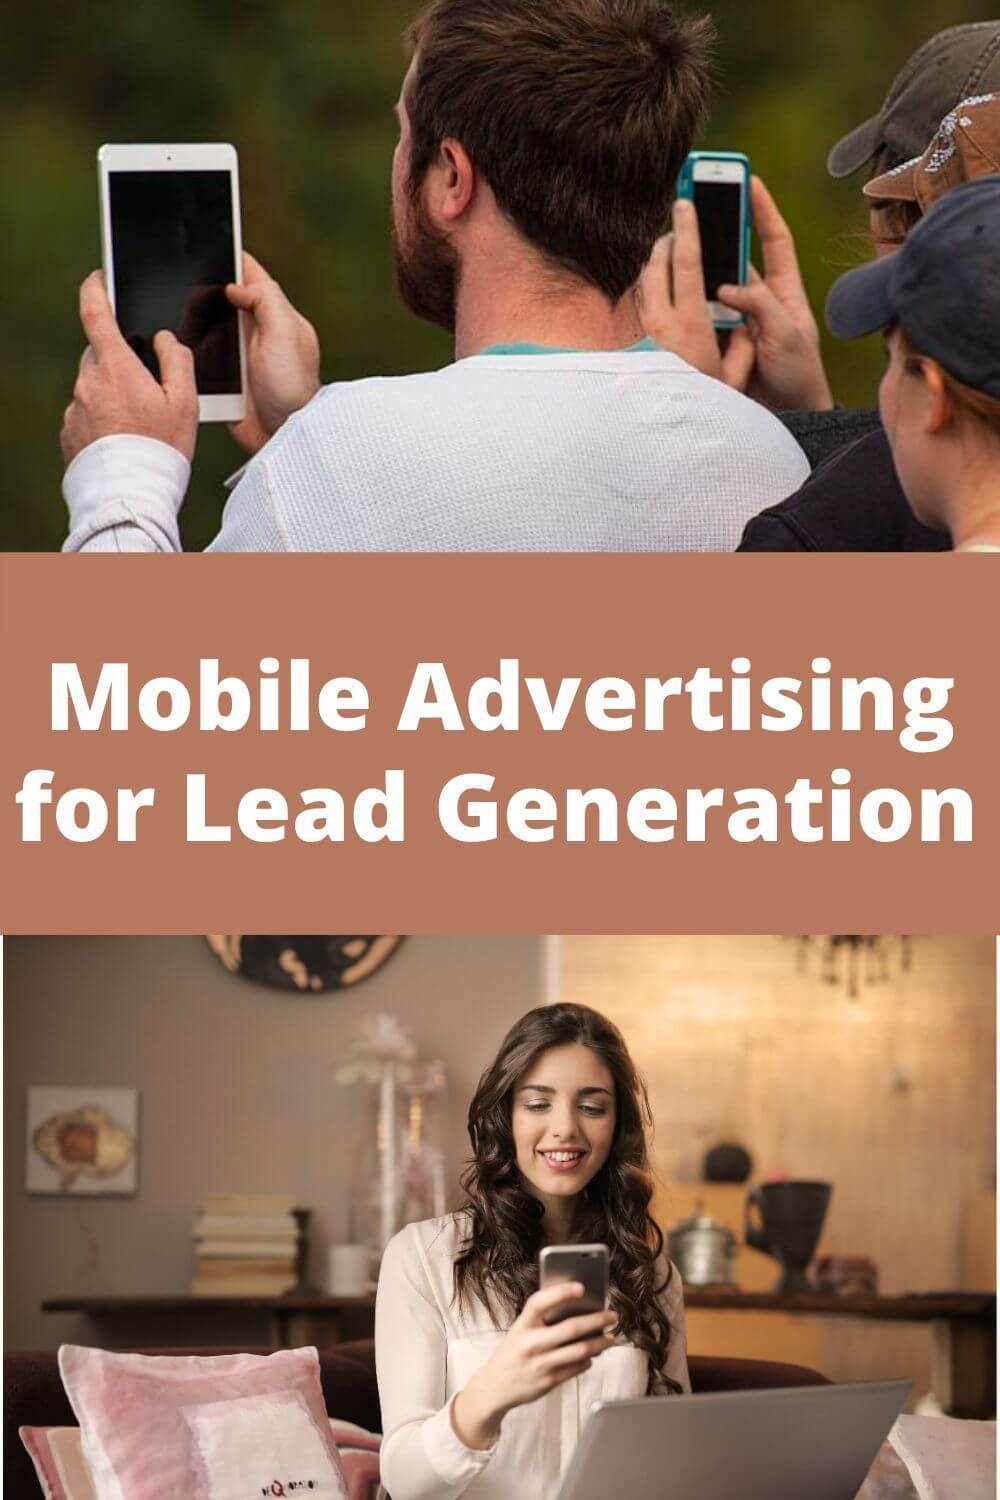 Mobile advertising for lead generation